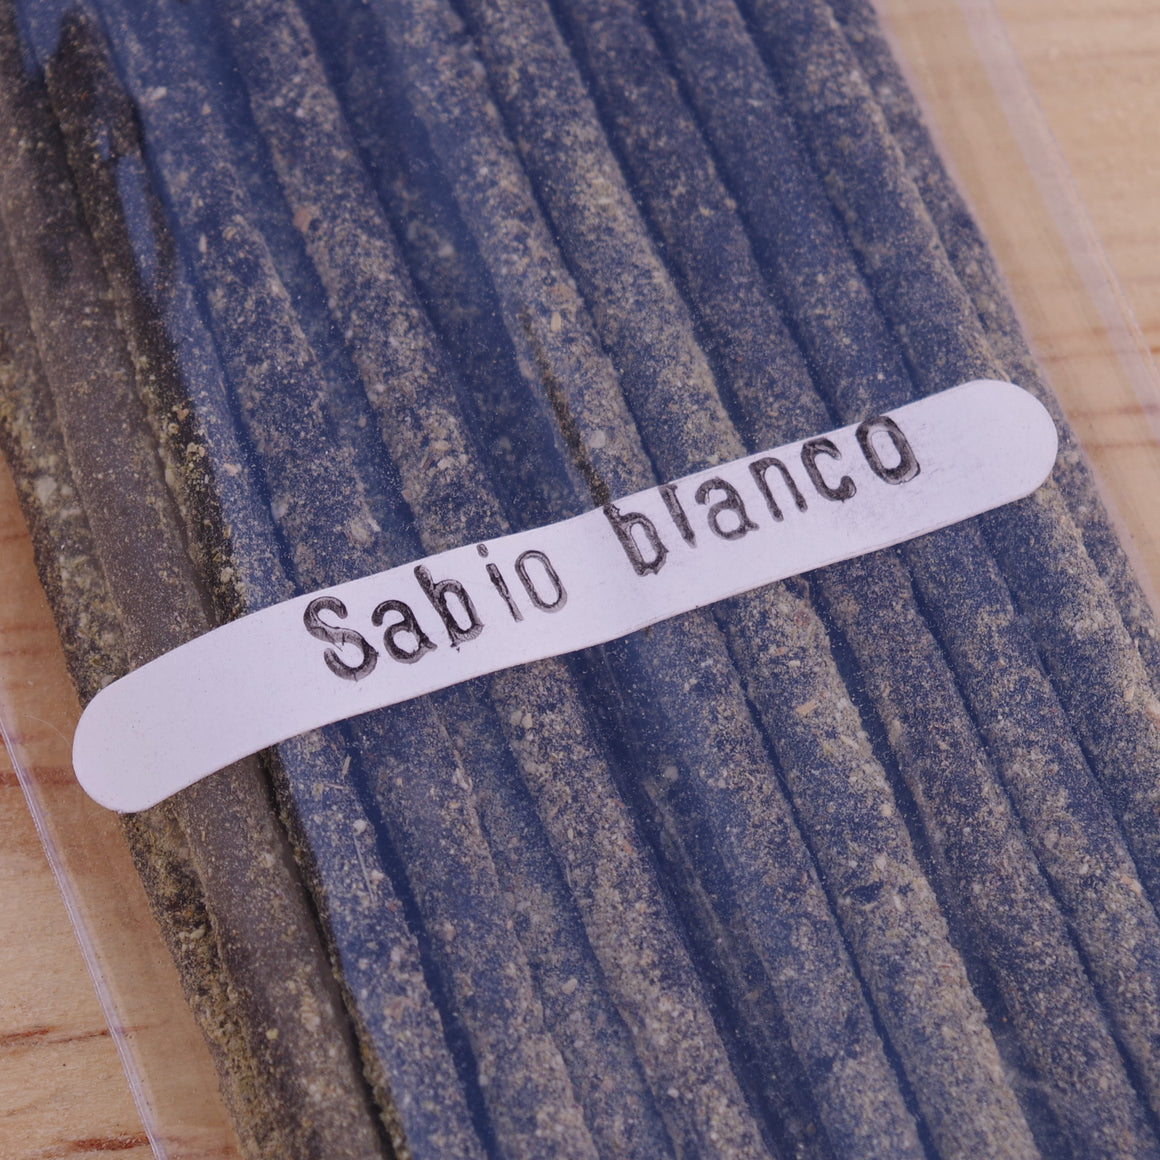 40 White Sage Incense Sticks Handrolled In Mexico